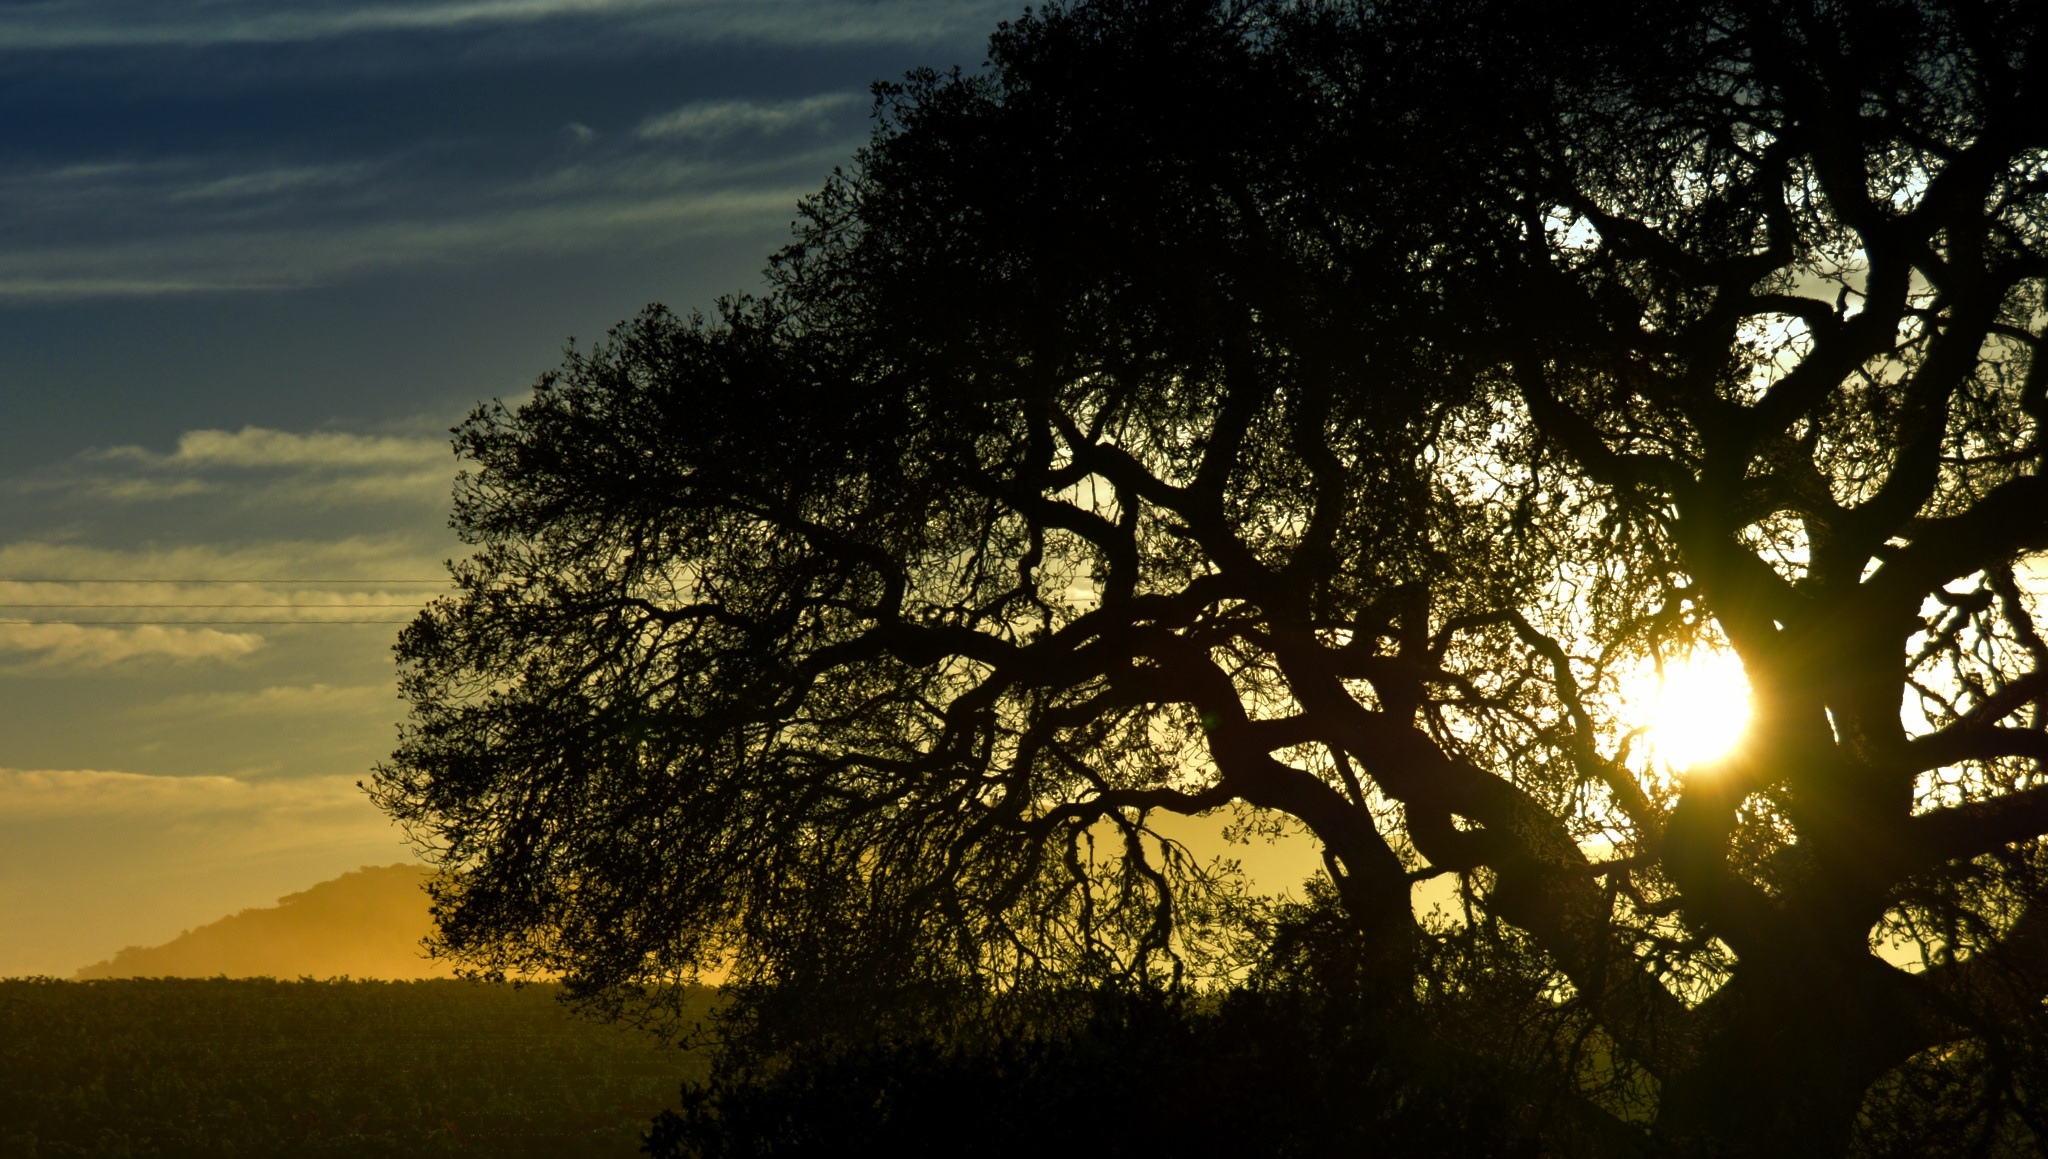 Oak tree on Hwy 101 north of Santa Maria as the sun was coming up. Flickr - Harold Litwiler.